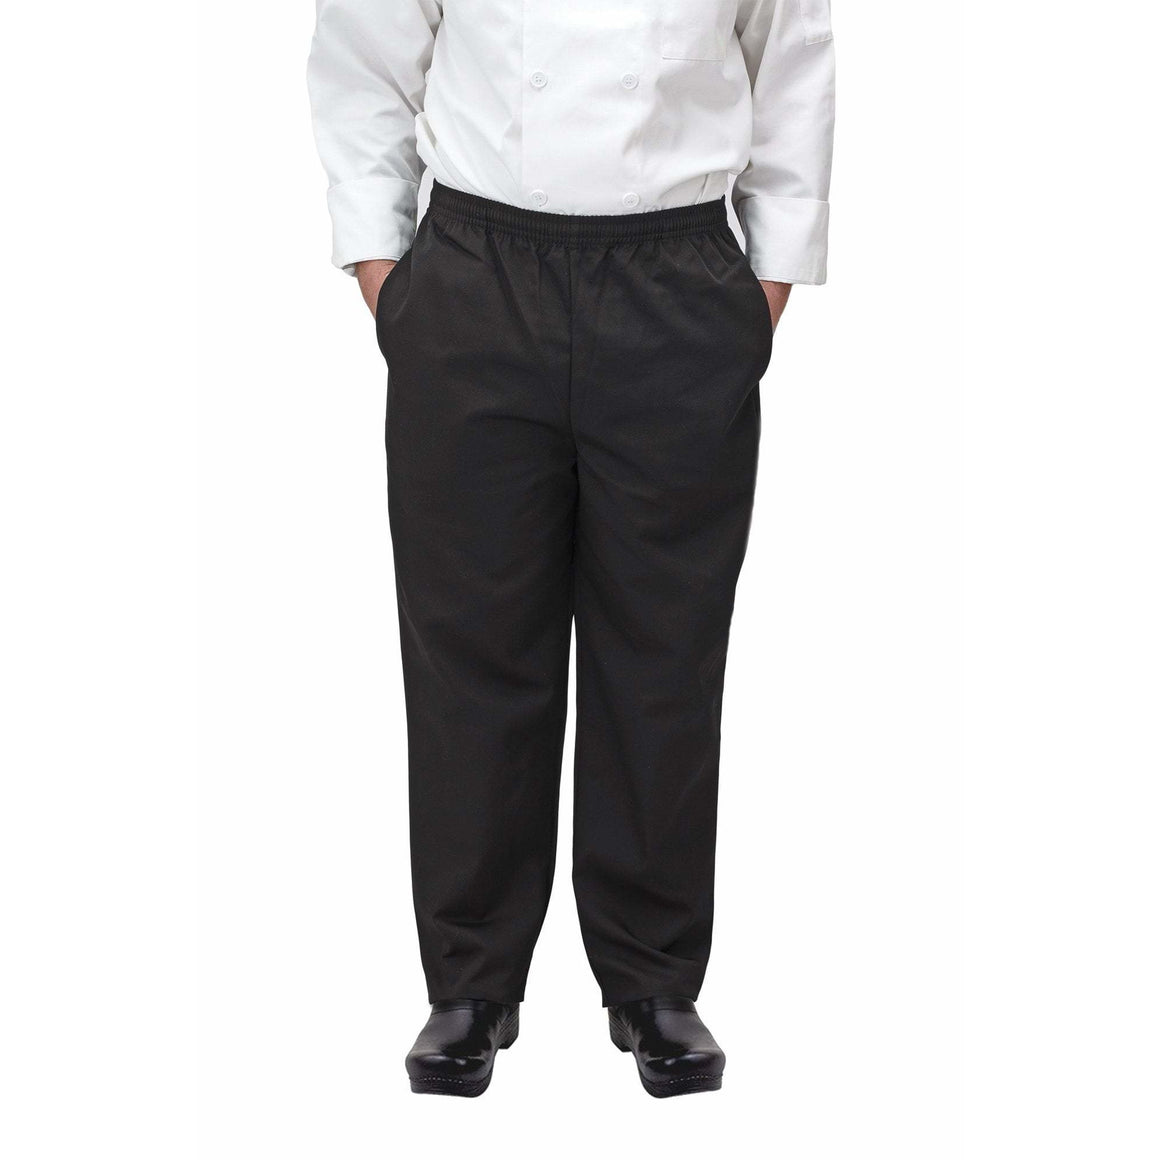 Winco - UNF-2KM - Chef pants, black, M - Apparel